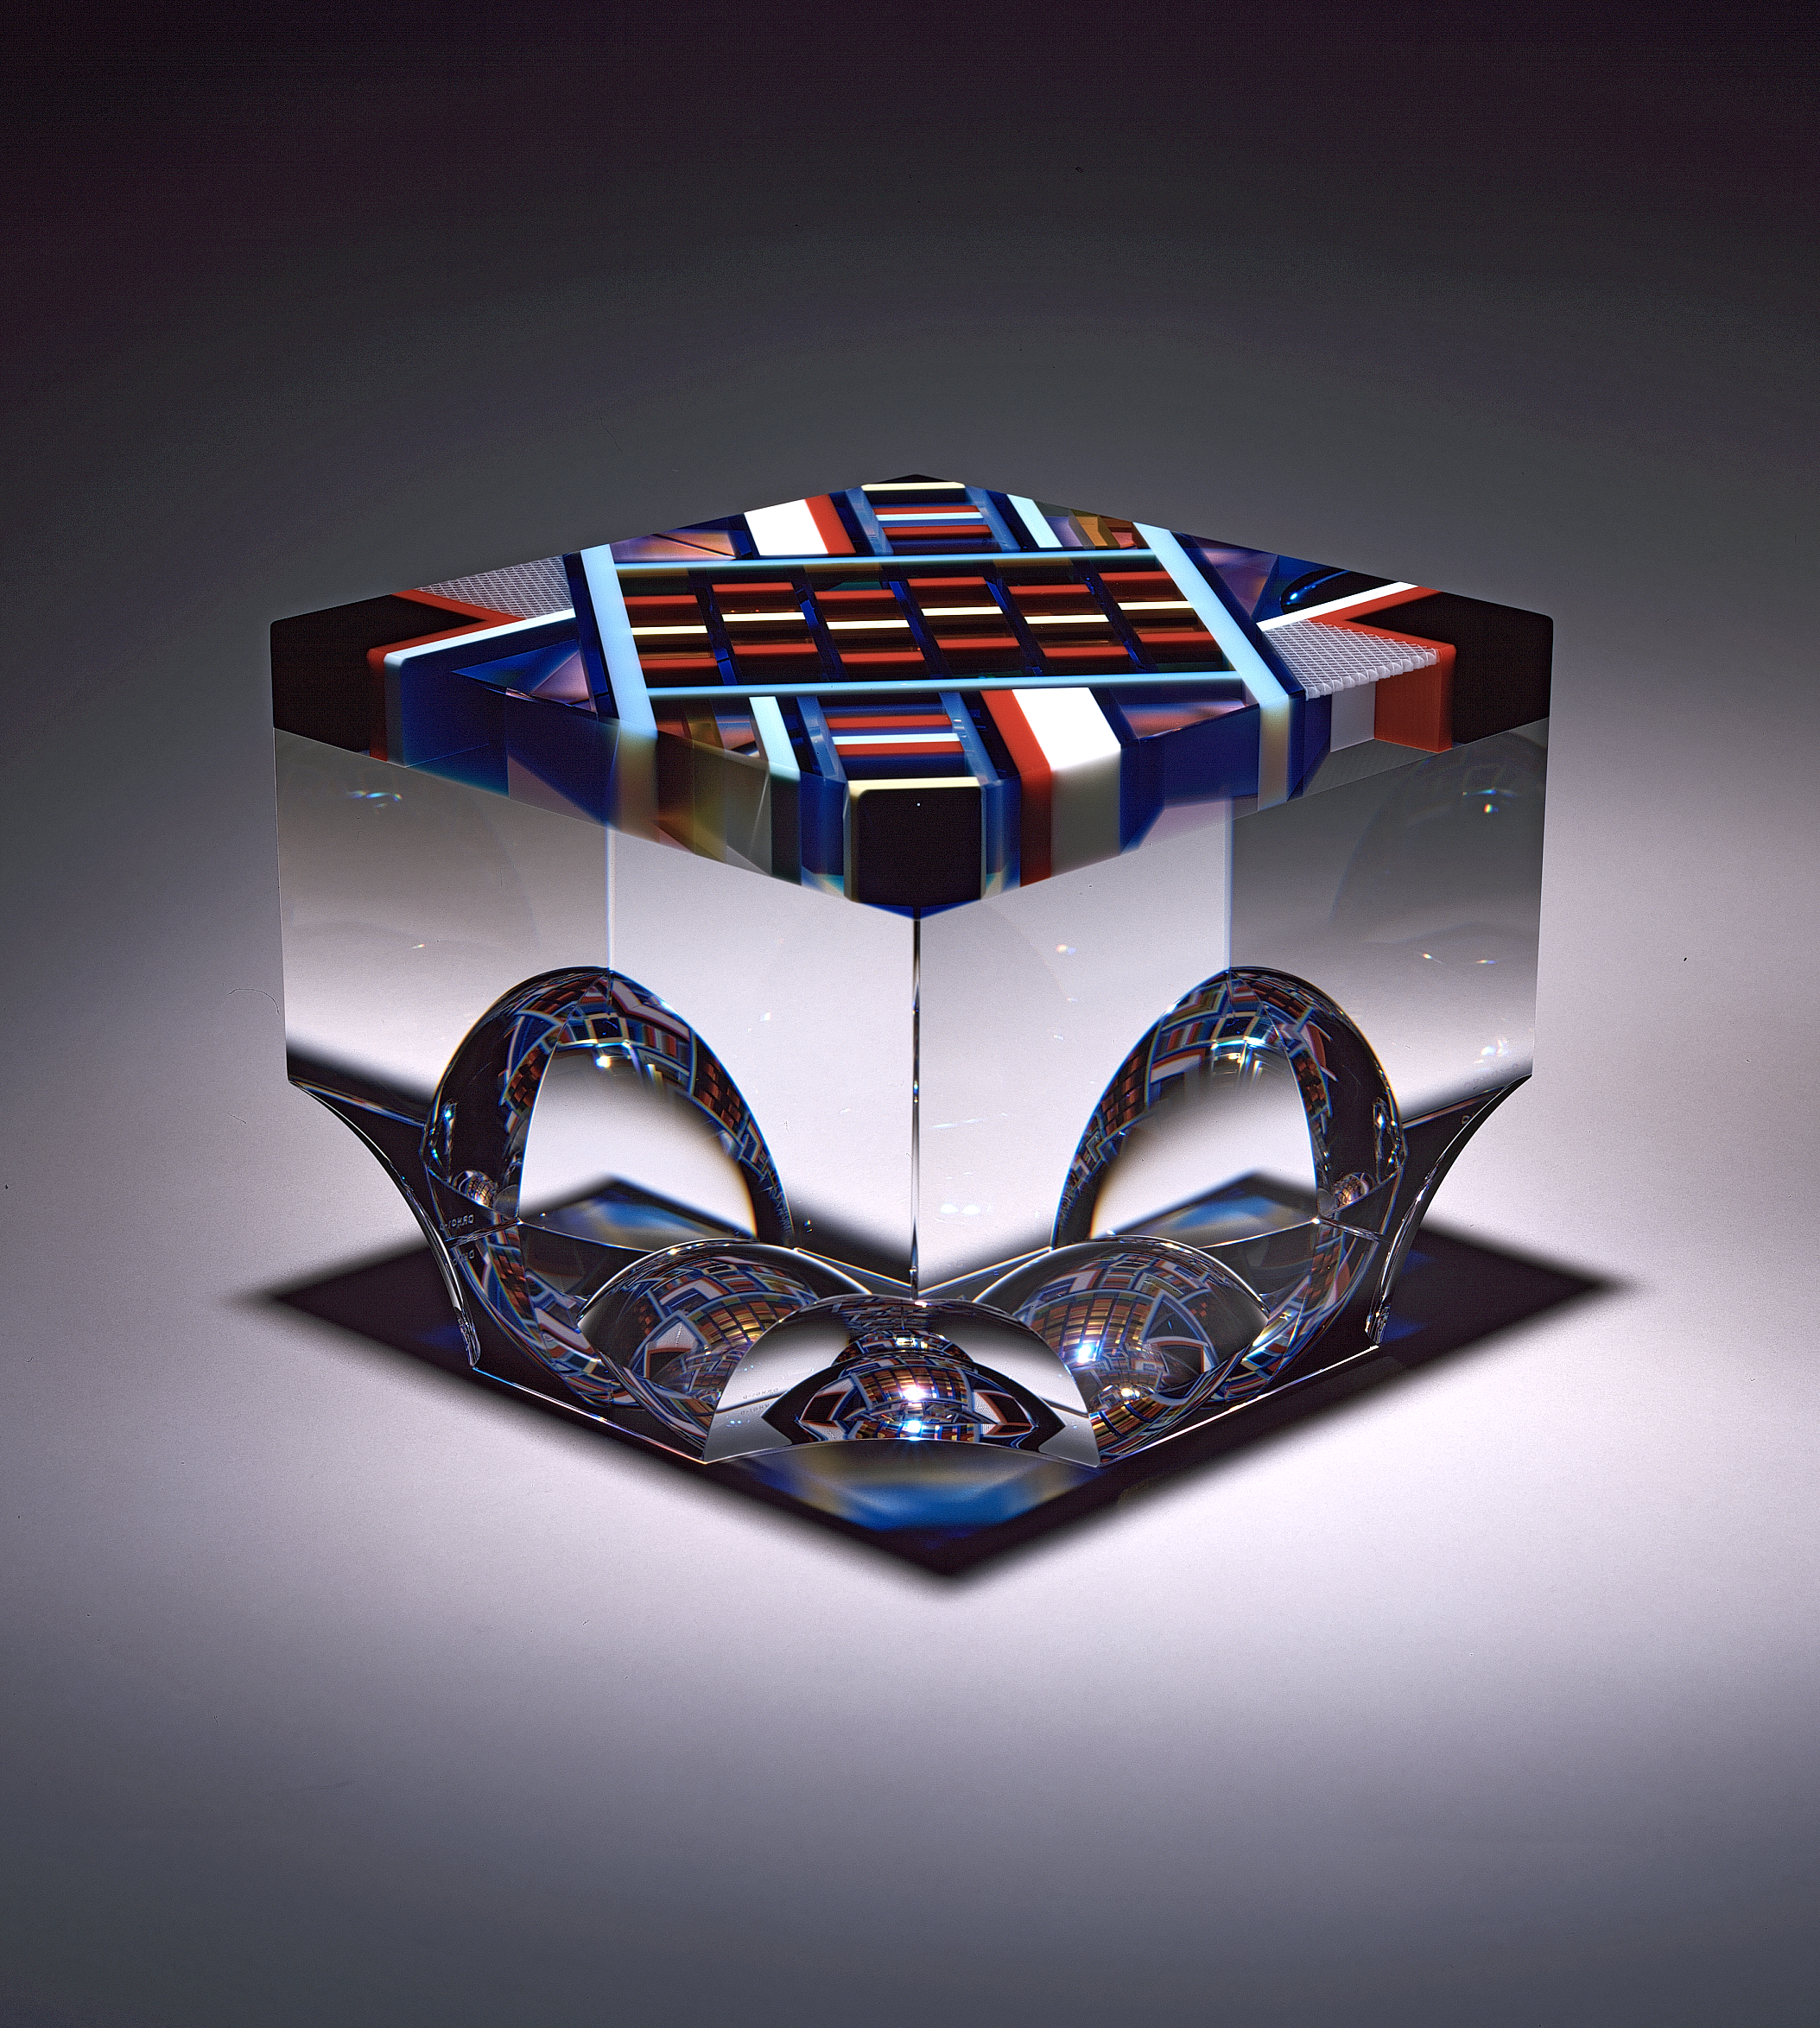 David Huchthausen (Ameircan, born 1951). Echo Chamber,  1999.Cut, laminated, and optically-polished glass;11 x 9 x 8 in. Courtesy of Huchthausen Studio. Photo courtesy of the artist.